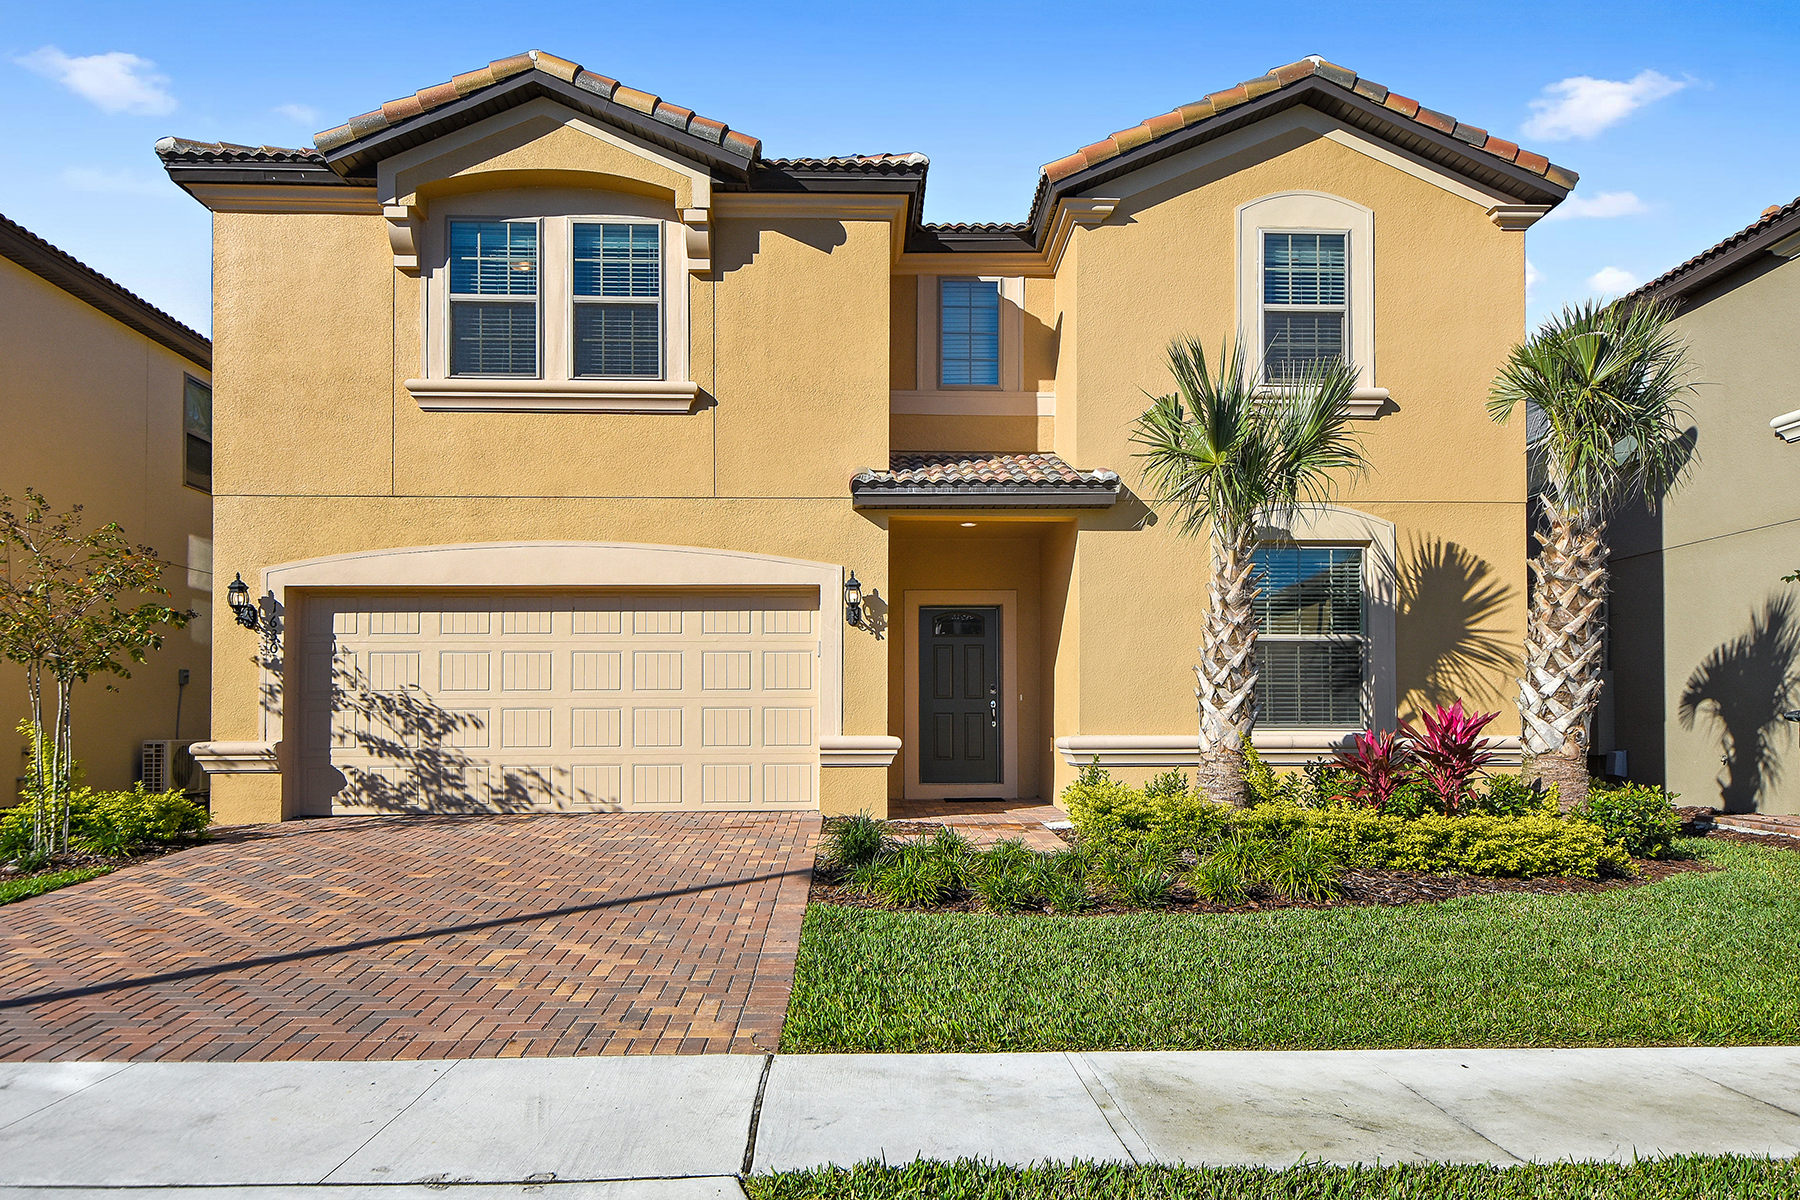 Single Family Homes for Sale at Kissimmee-Orlando 1630 Lima Ave Kissimmee, Florida 34747 United States